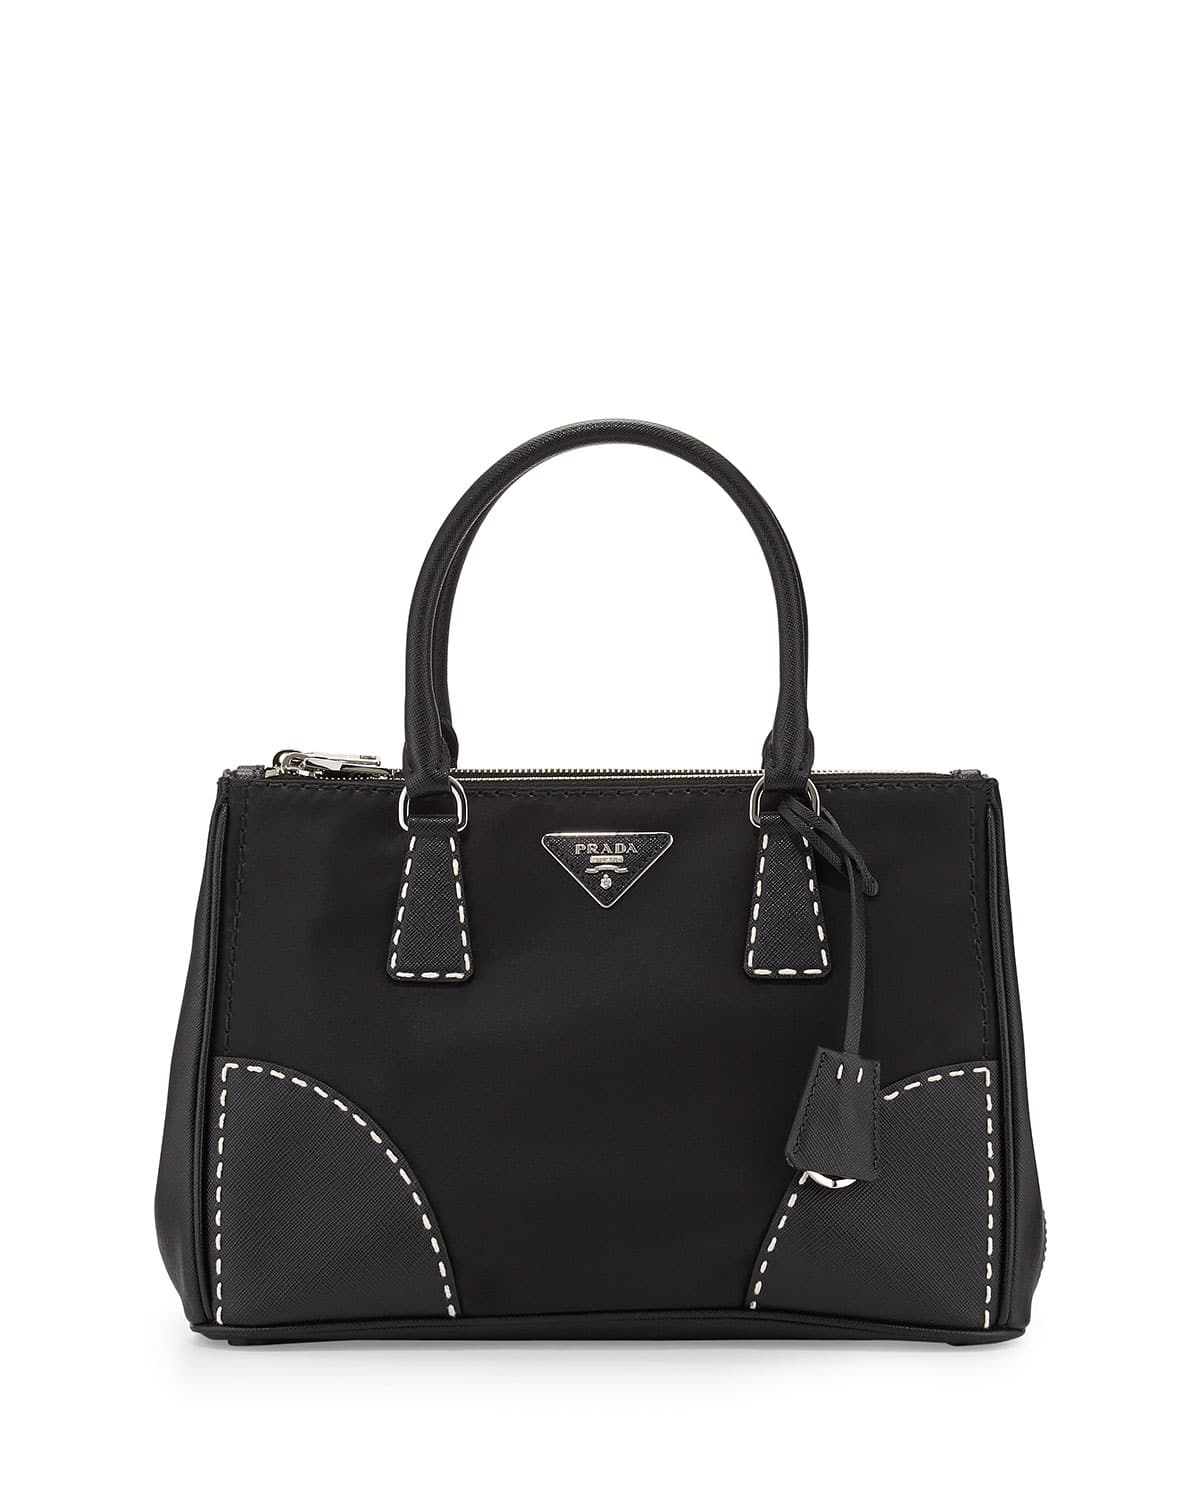 prada handbag discount - Prada Spring / Summer 2015 Bag Collection featuring Large ...